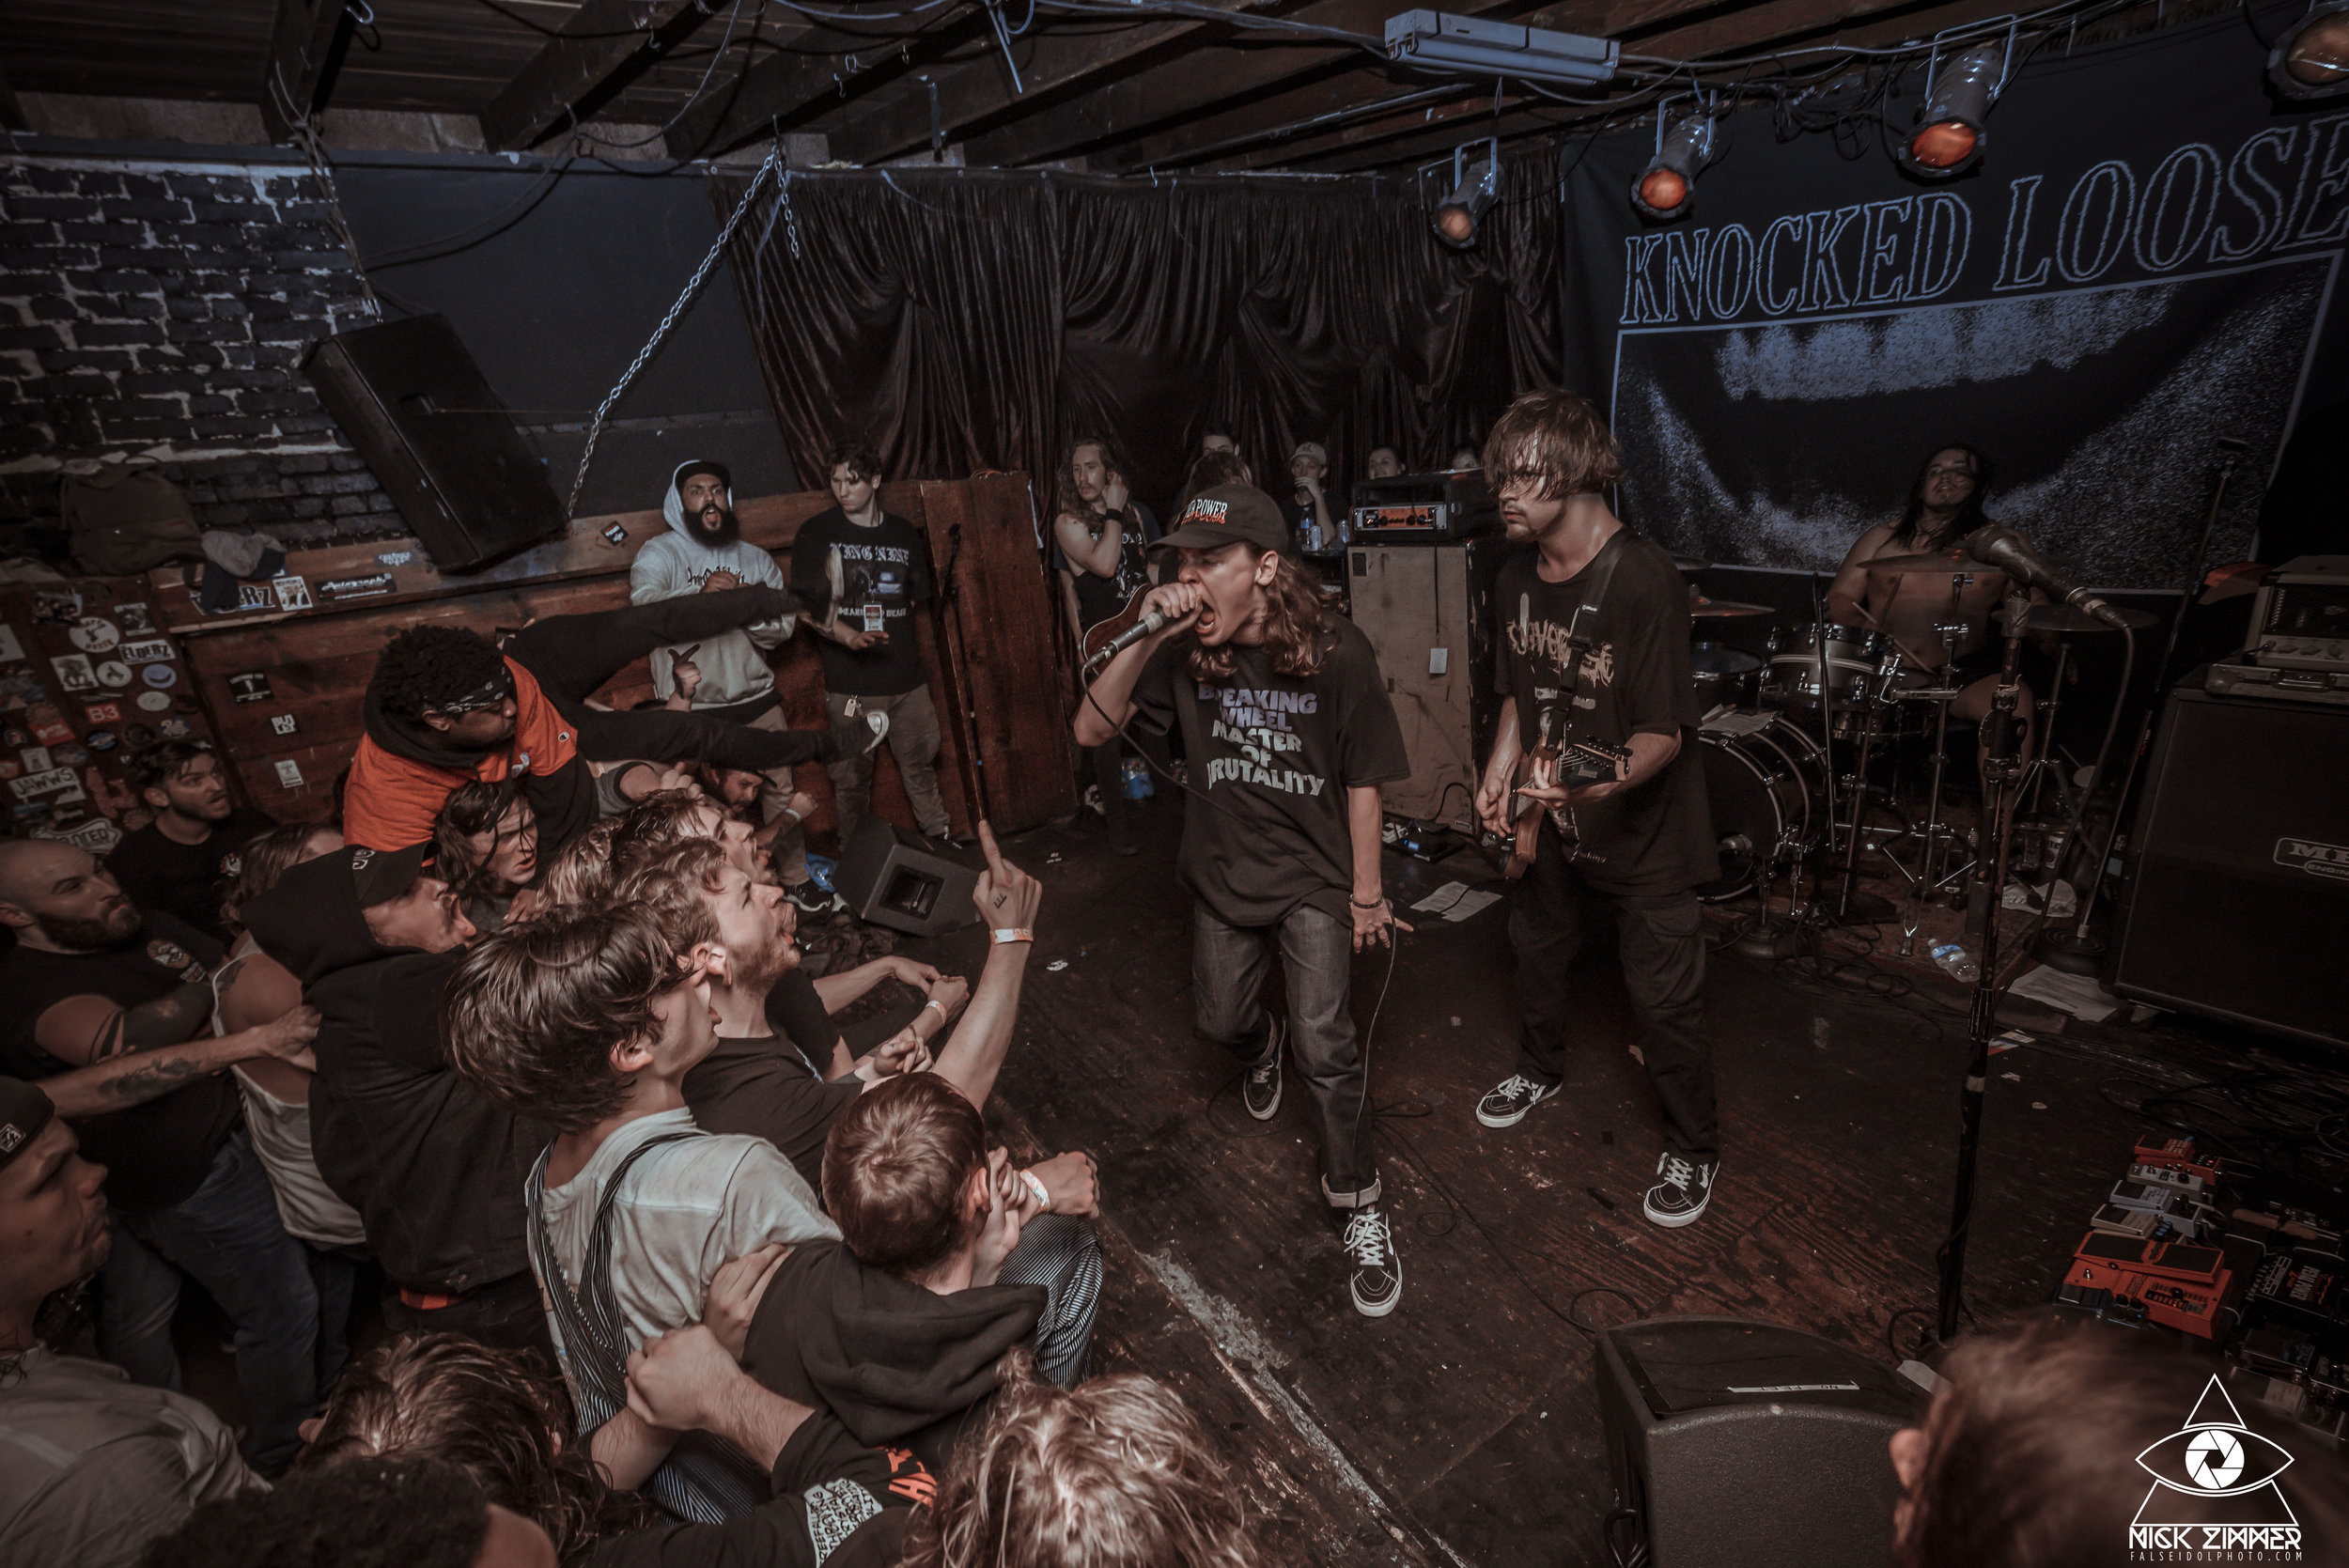 knockedloose.TheEnd.NickZimmer (1 of 1).jpg